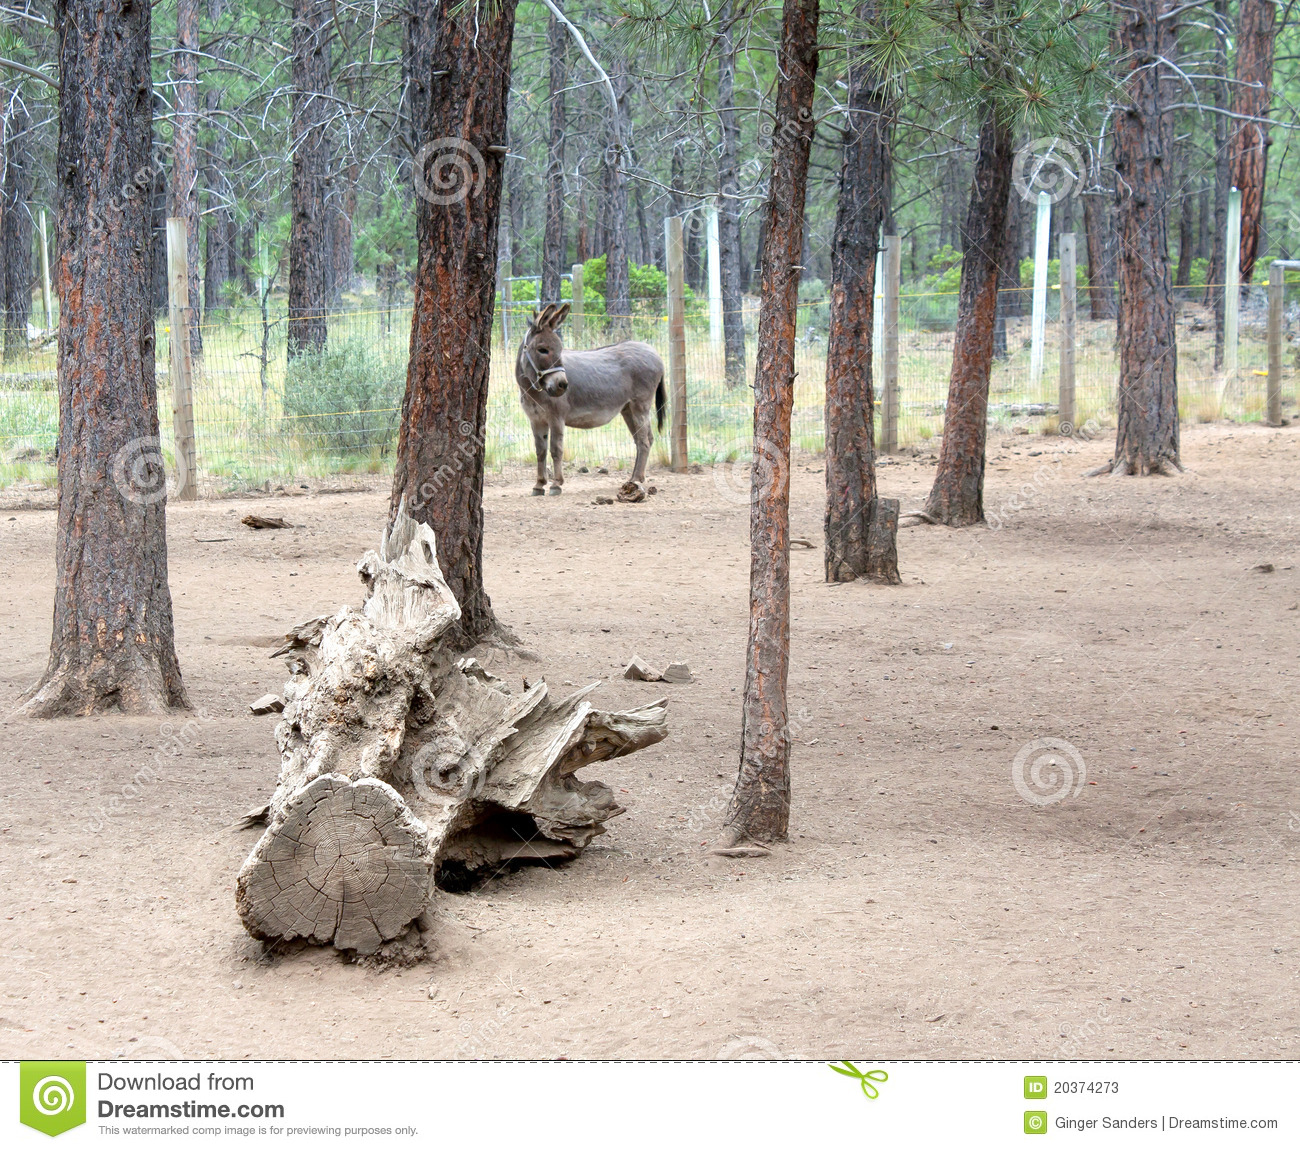 Donkey in the forest